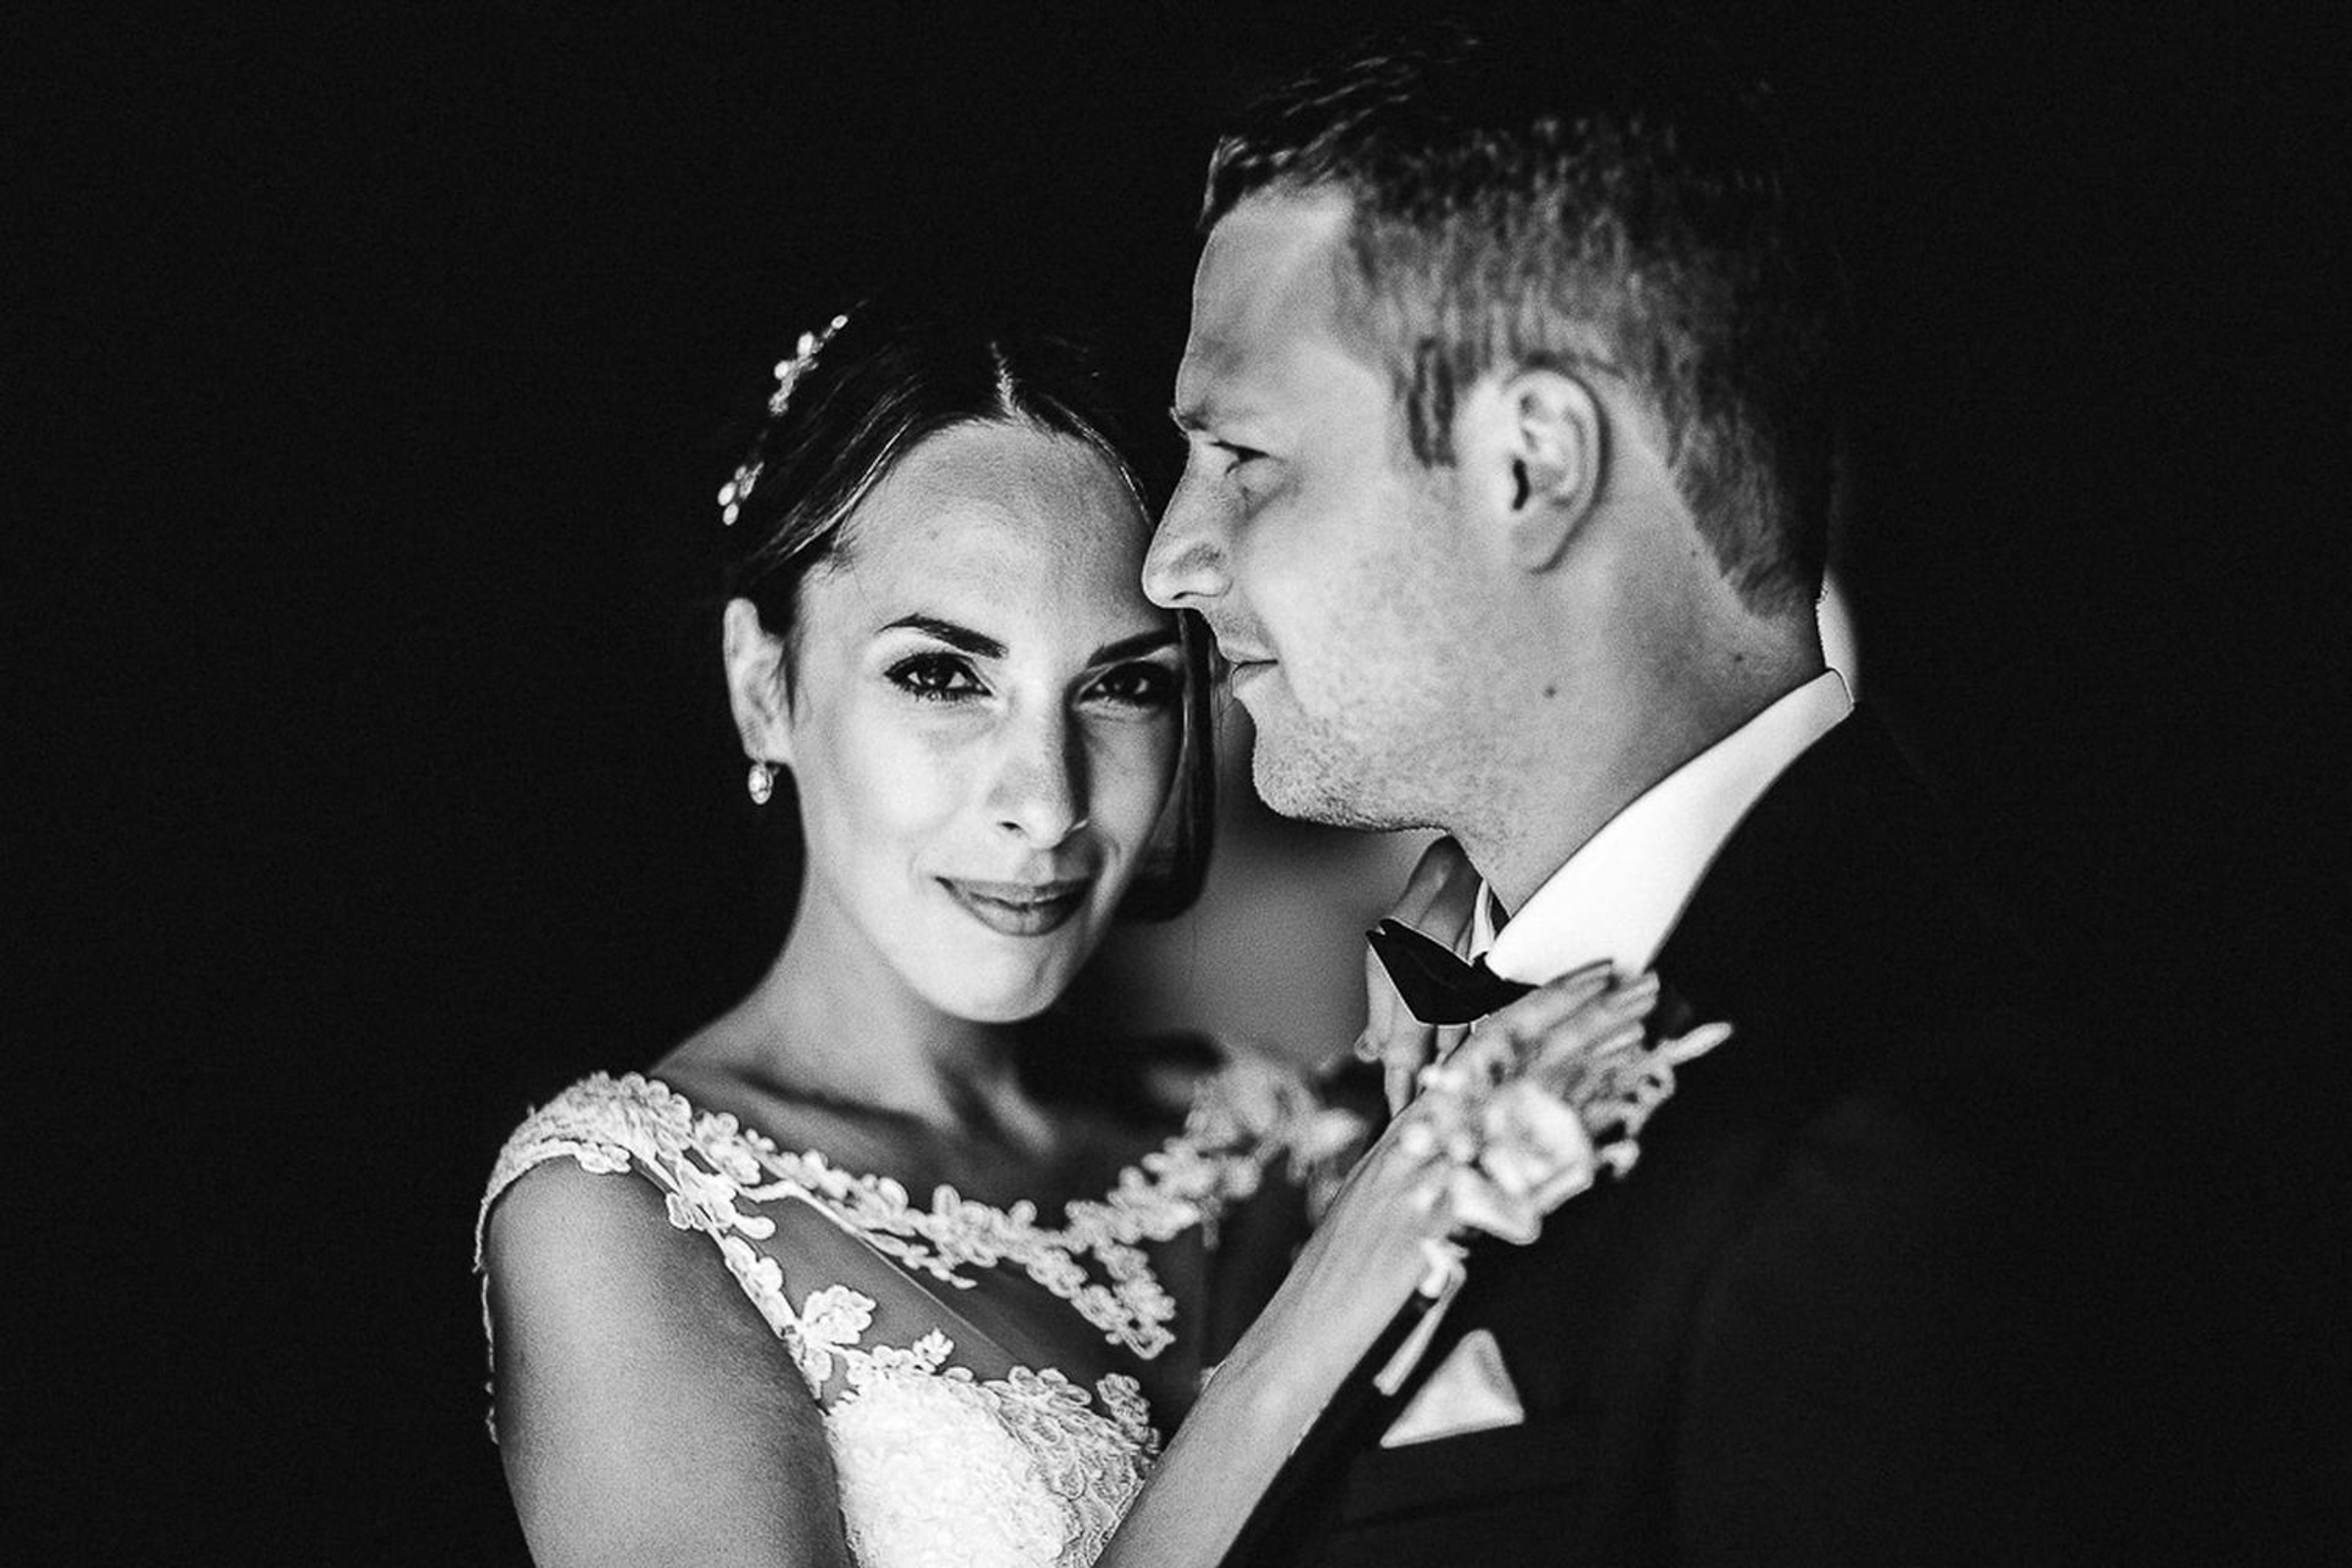 bride and groom romantic black and white portrait- photo by FineArt Weddings | Photography